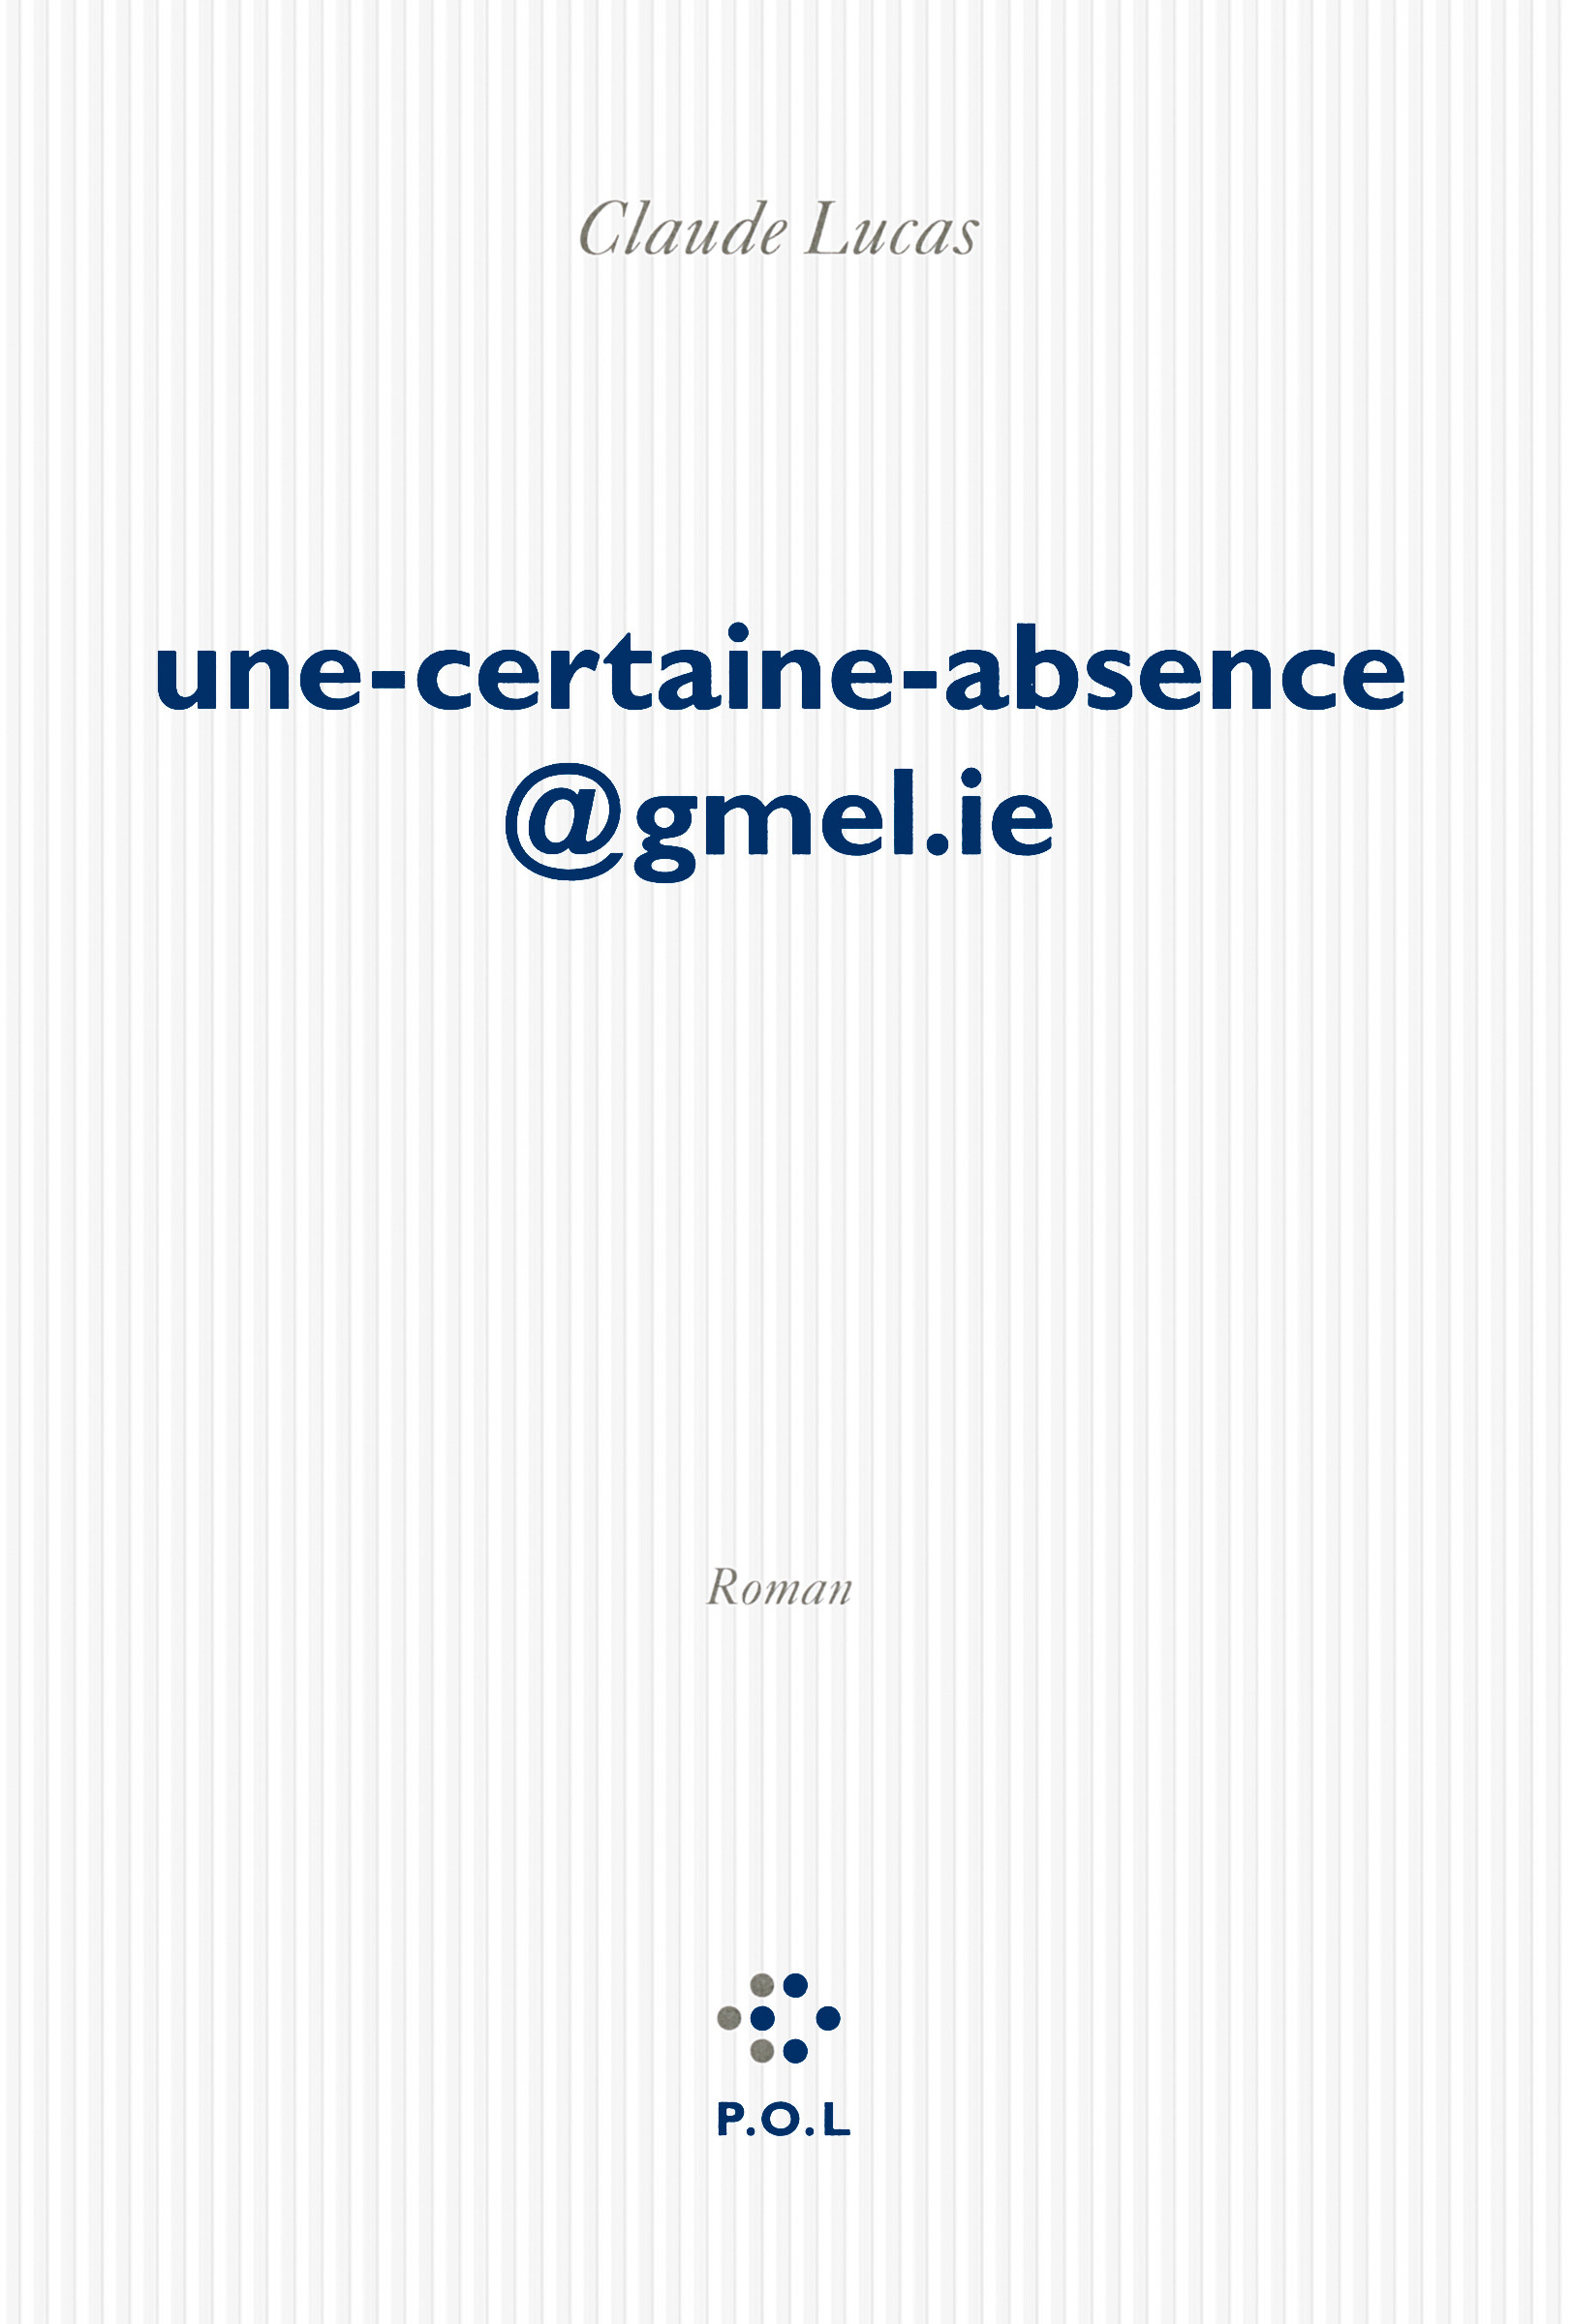 UNE-CERTAINE-ABSENCE GMEL.IE